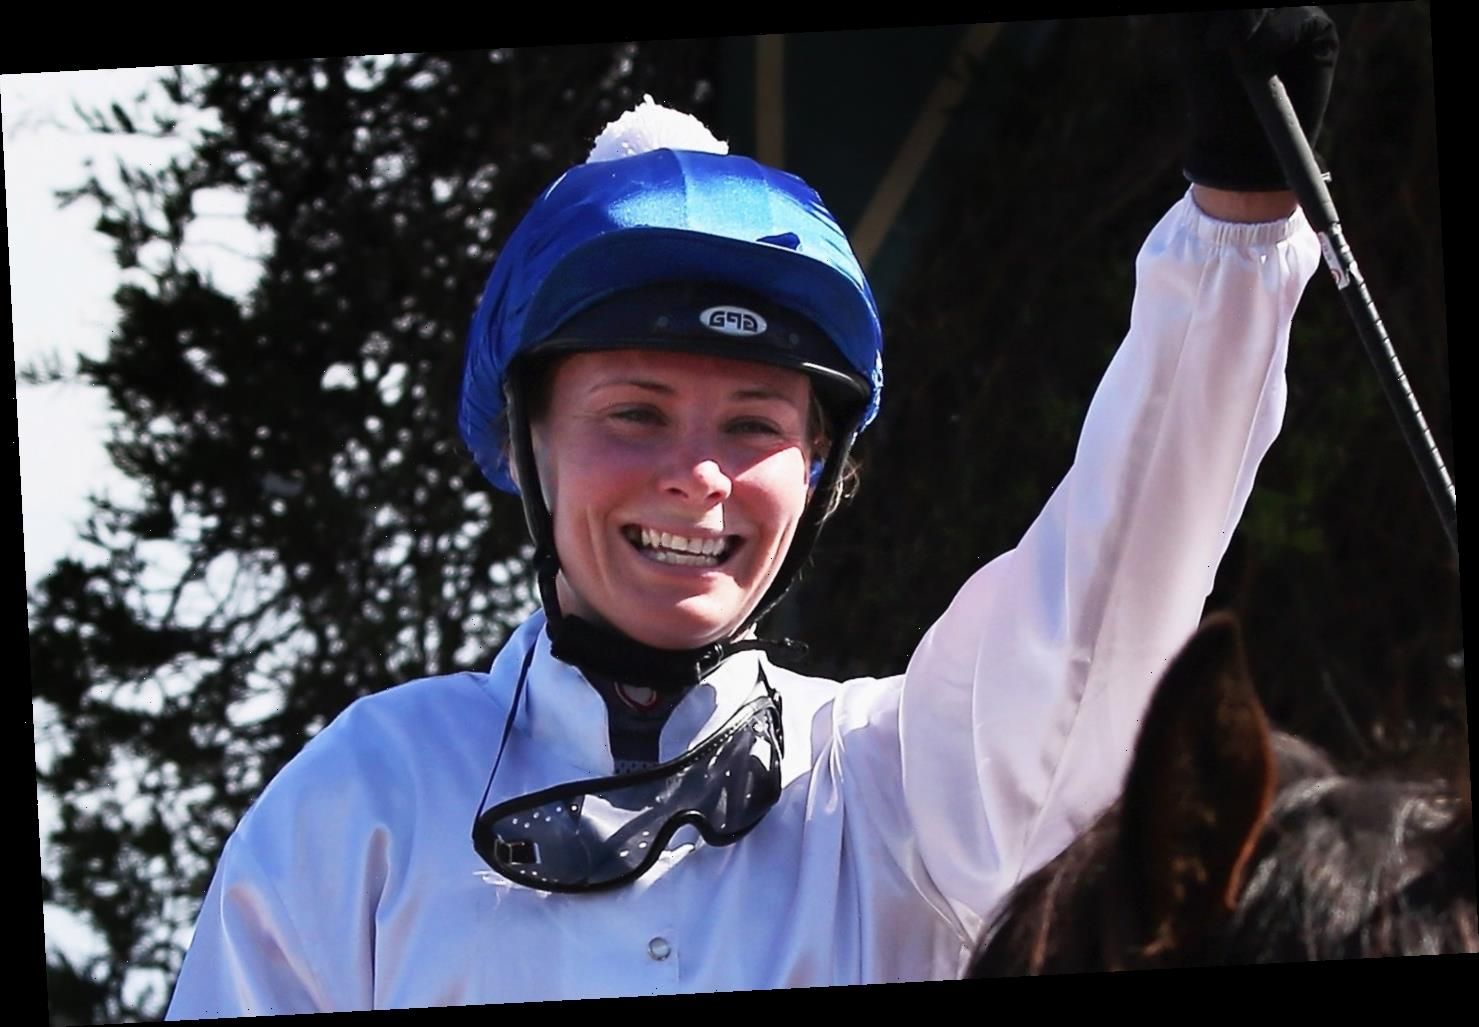 Top female jockey dreaming of being home for Christmas after incredible recovery from coma and facial surgery